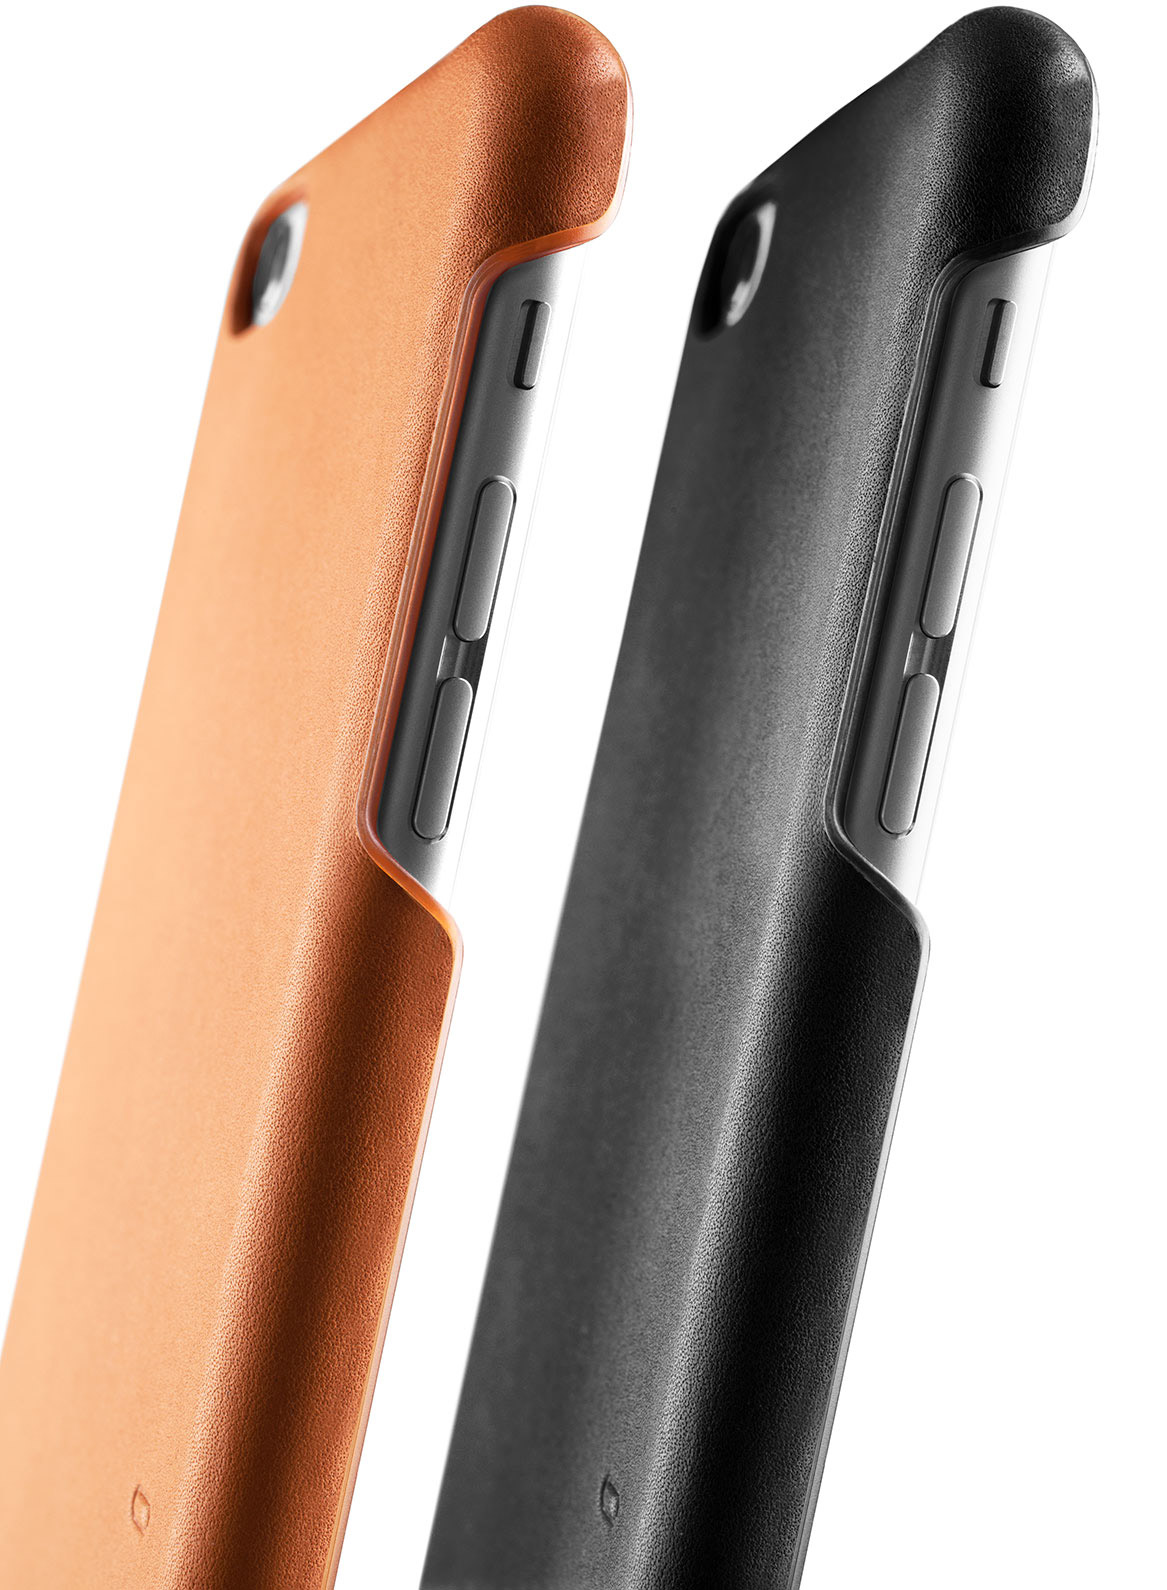 Mujjo Launches Leather Case for iPhone 6s and 6s Plus